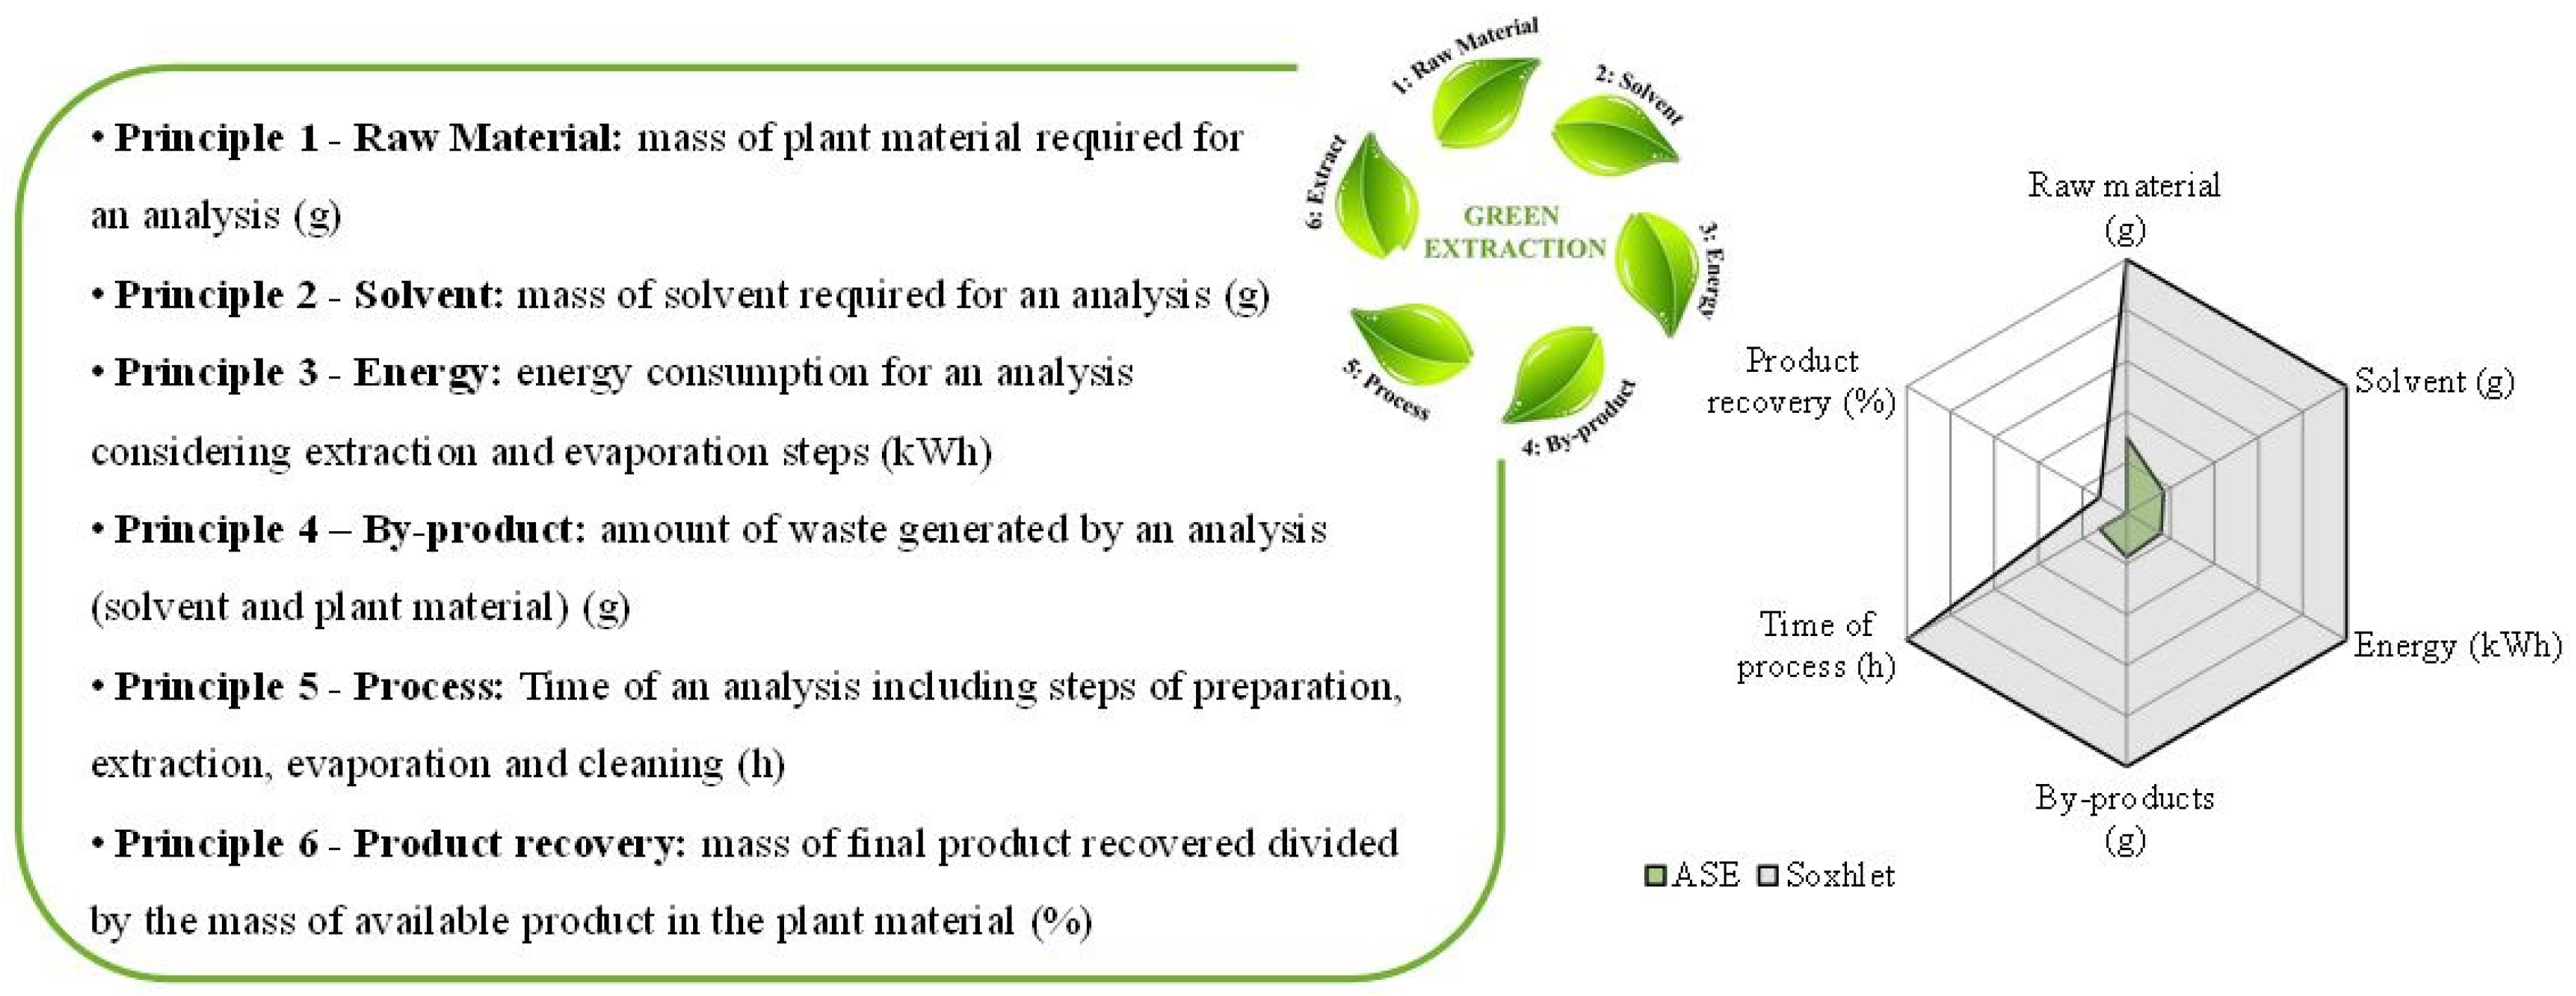 Foods Free Full Text Comparison Between Pressurized Liquid Extraction And Conventional Soxhlet Extraction For Rosemary Antioxidants Yield Composition And Environmental Footprint Html